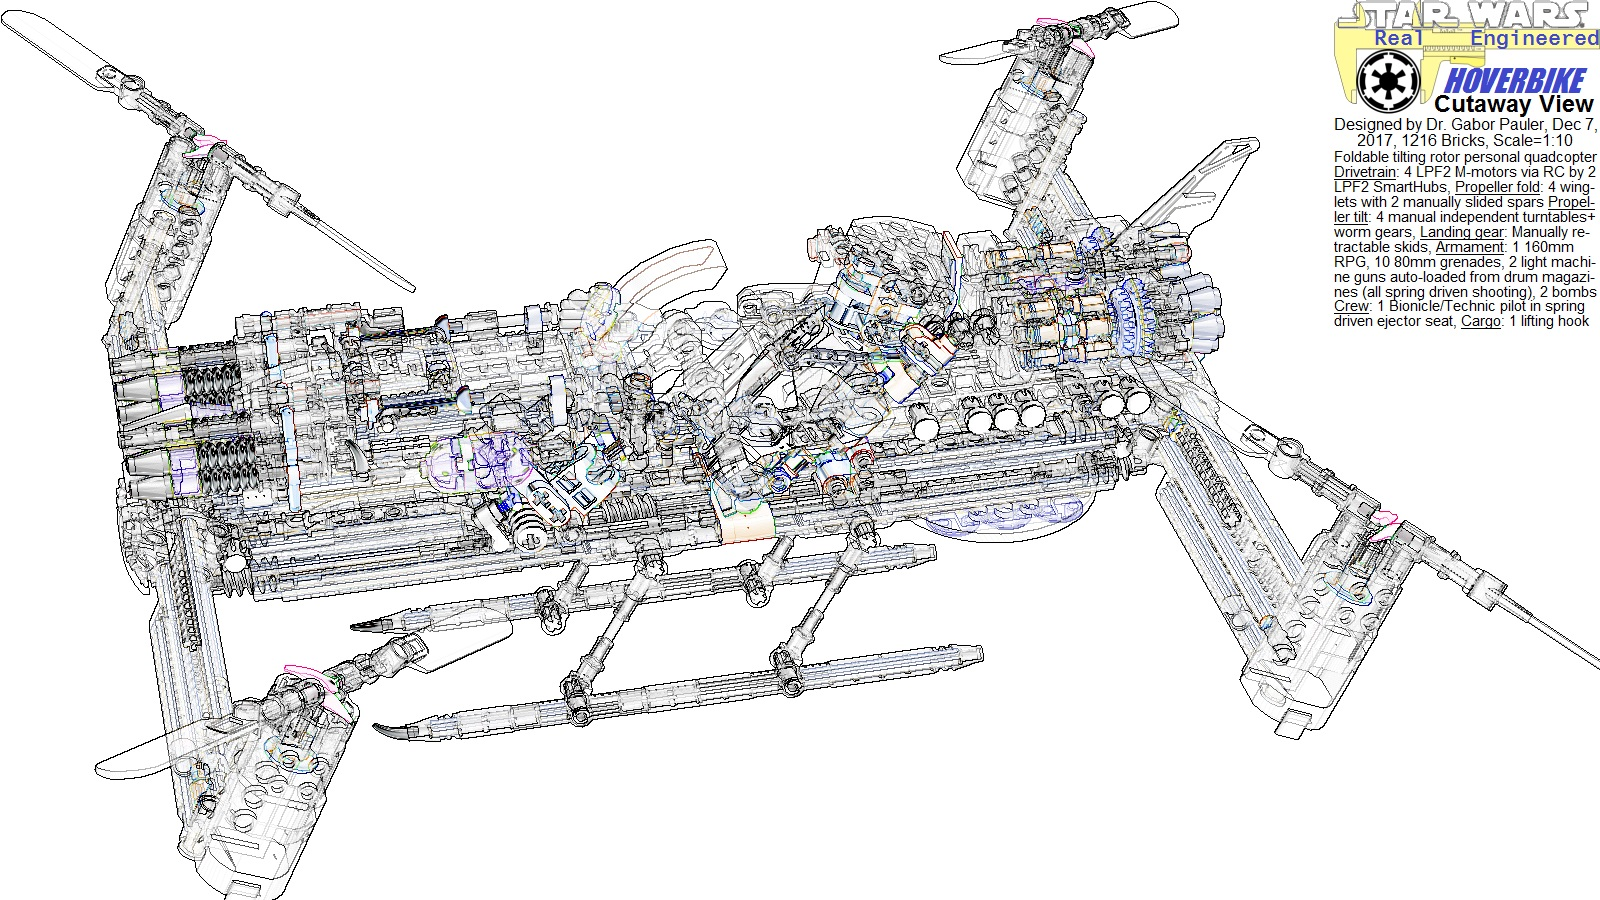 Cutaway view of Hoverbike